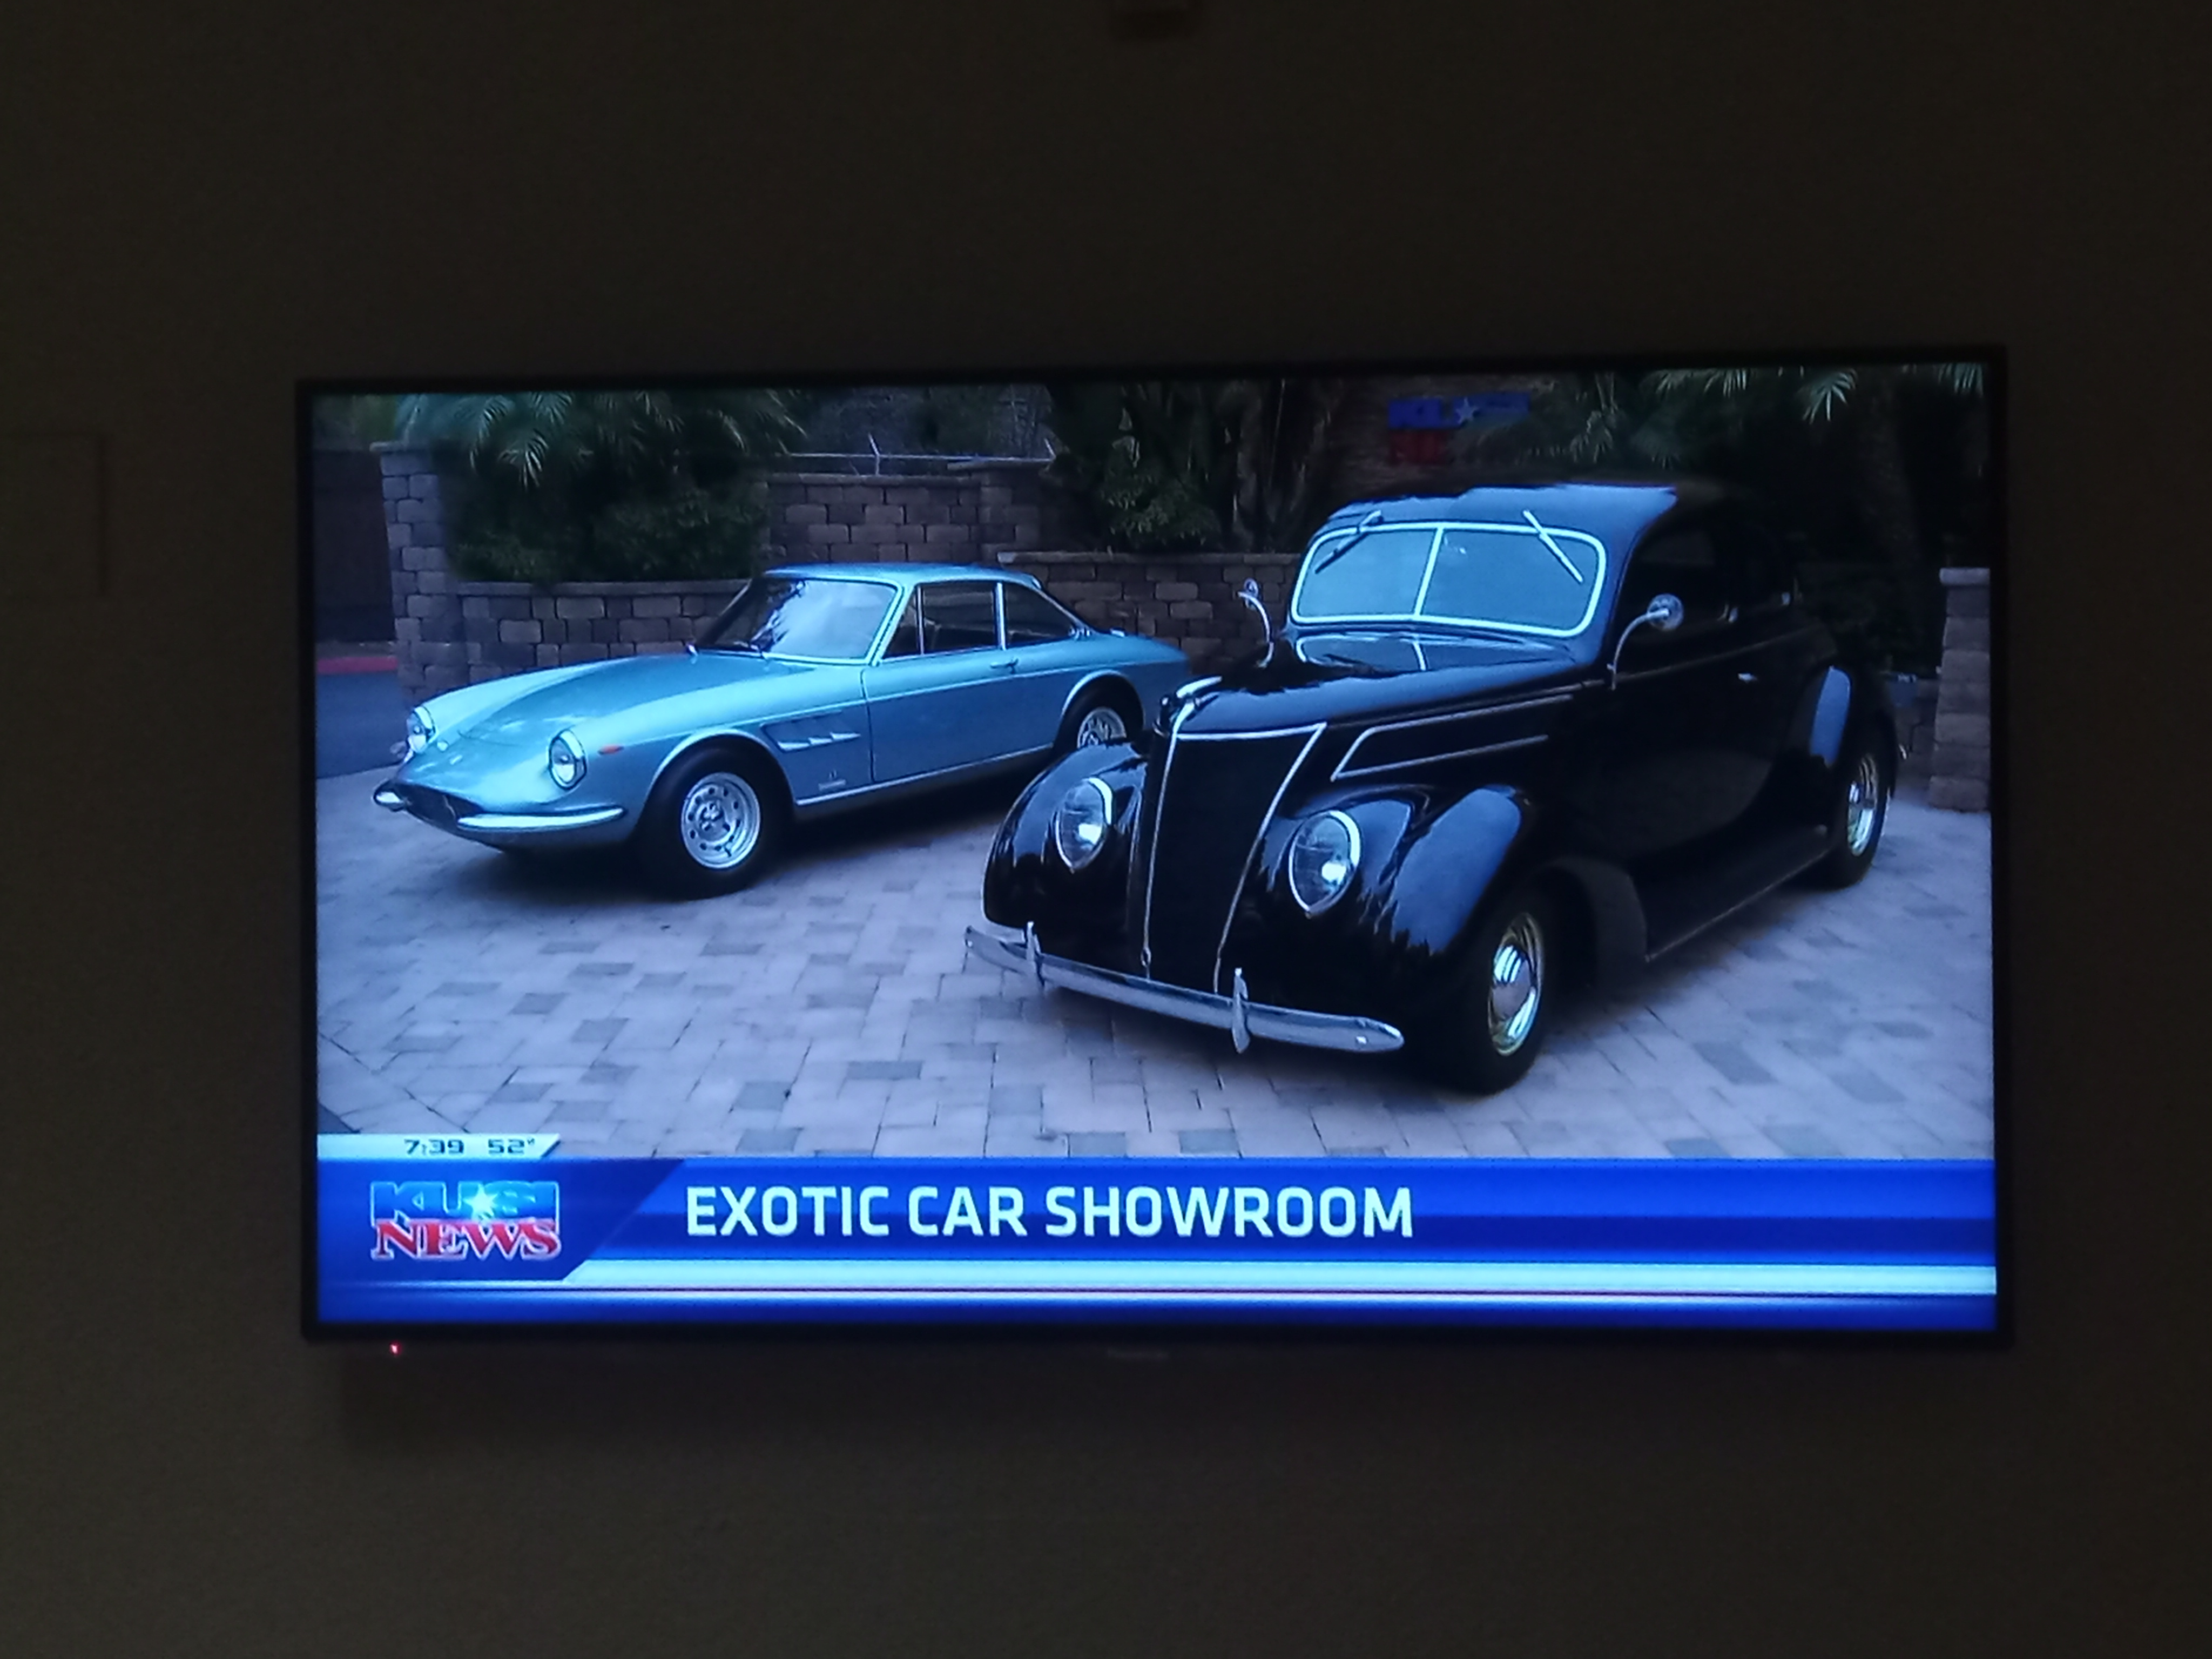 Two exotic cars featured on KUSI News